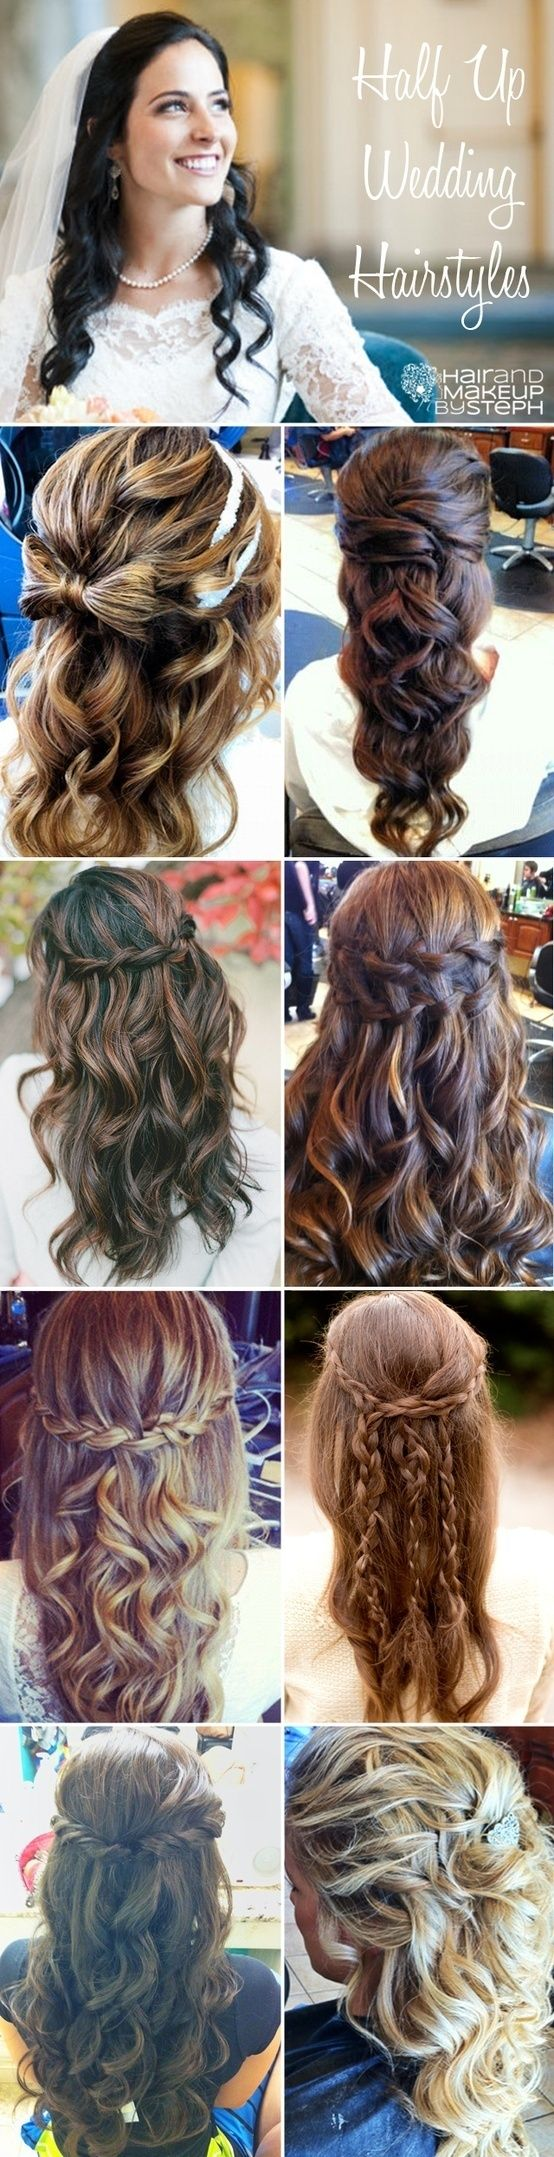 wedding hairstyles for every length hair style prom and homecoming